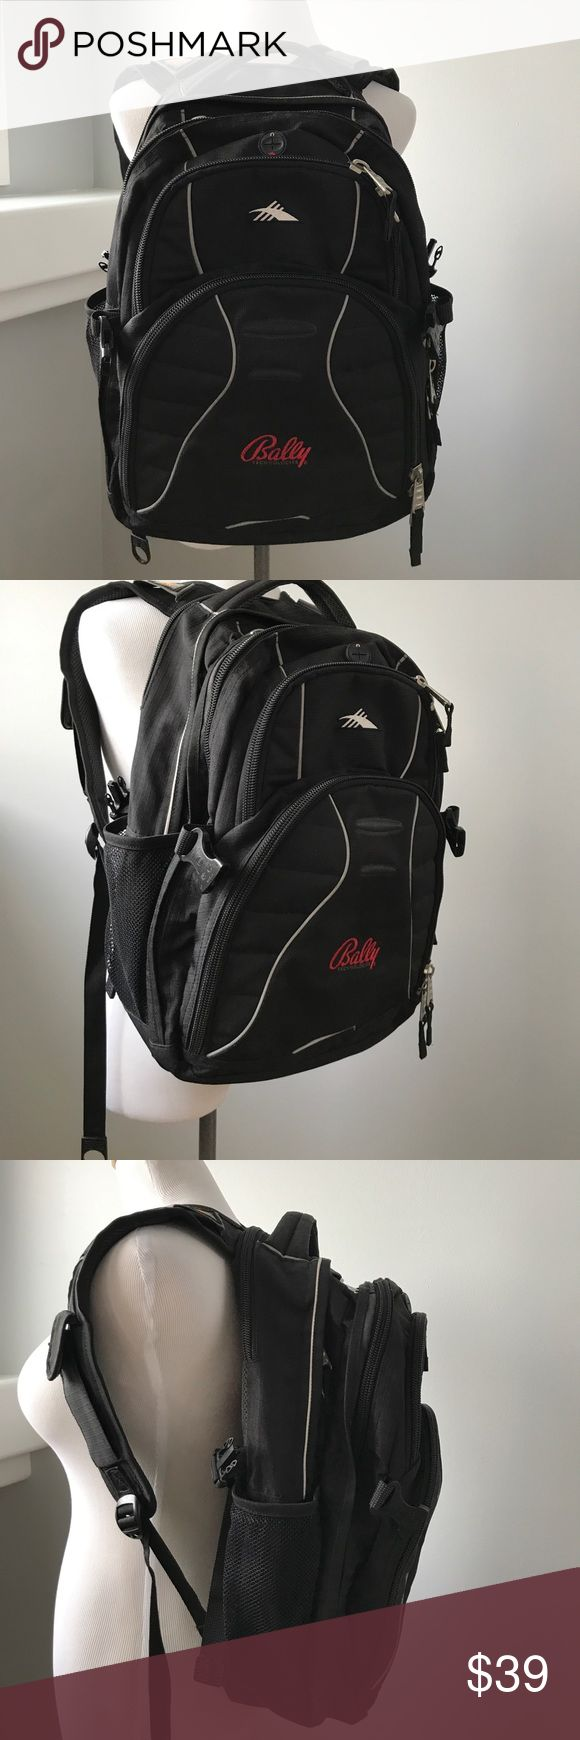 Suspension strap sys-high sierra airflow backpack Suspension straps system High sierra durable with lots of compartments backpack like new High Sierra Bags Backpacks